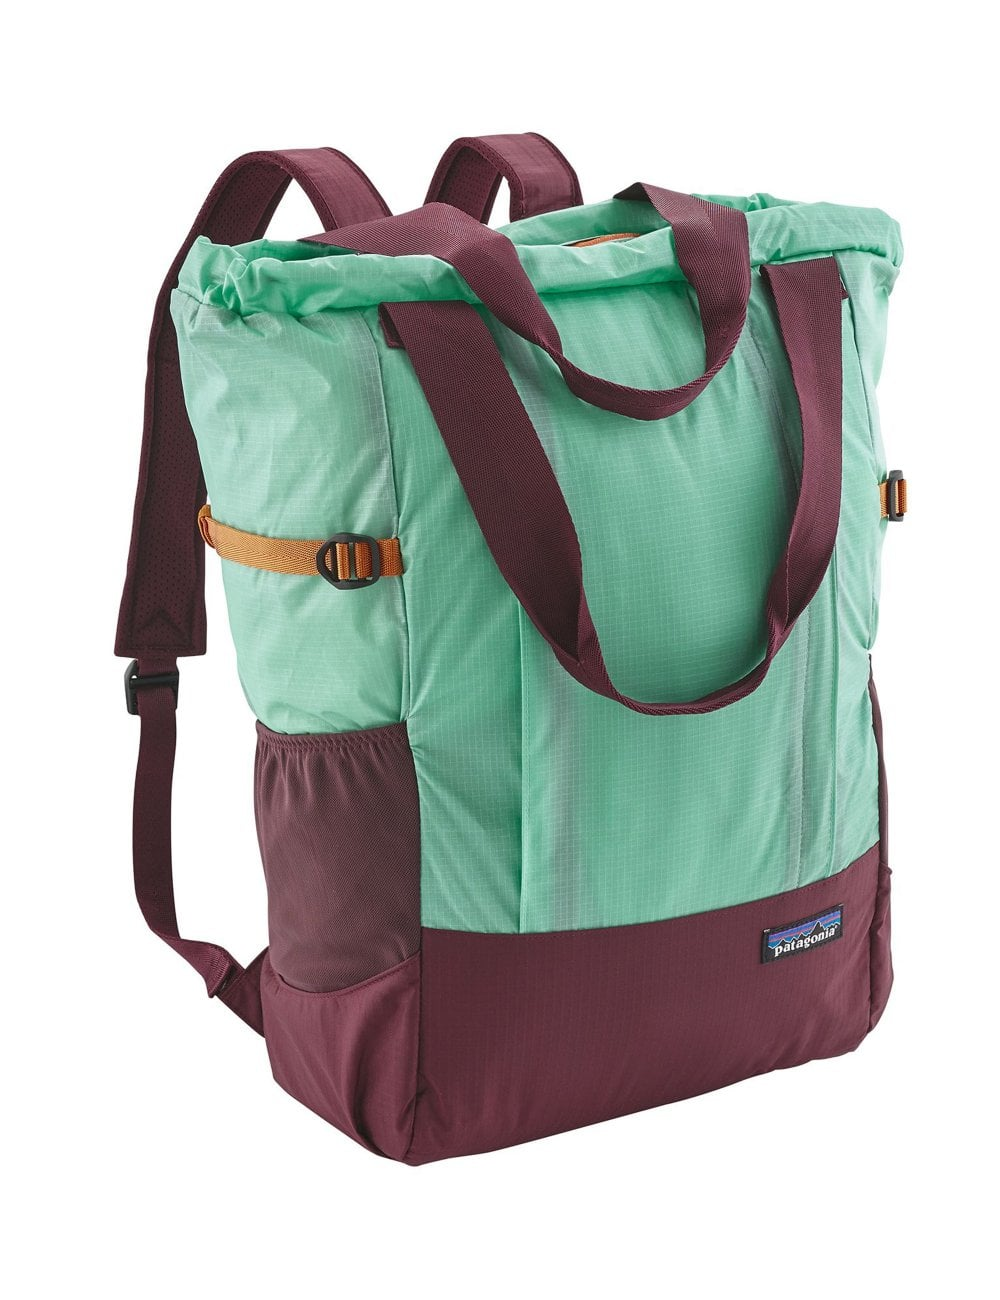 Patagonia Lightweight Travel Tote Bag - Vjosa Green - Accessories ... 47eae2ce39a06